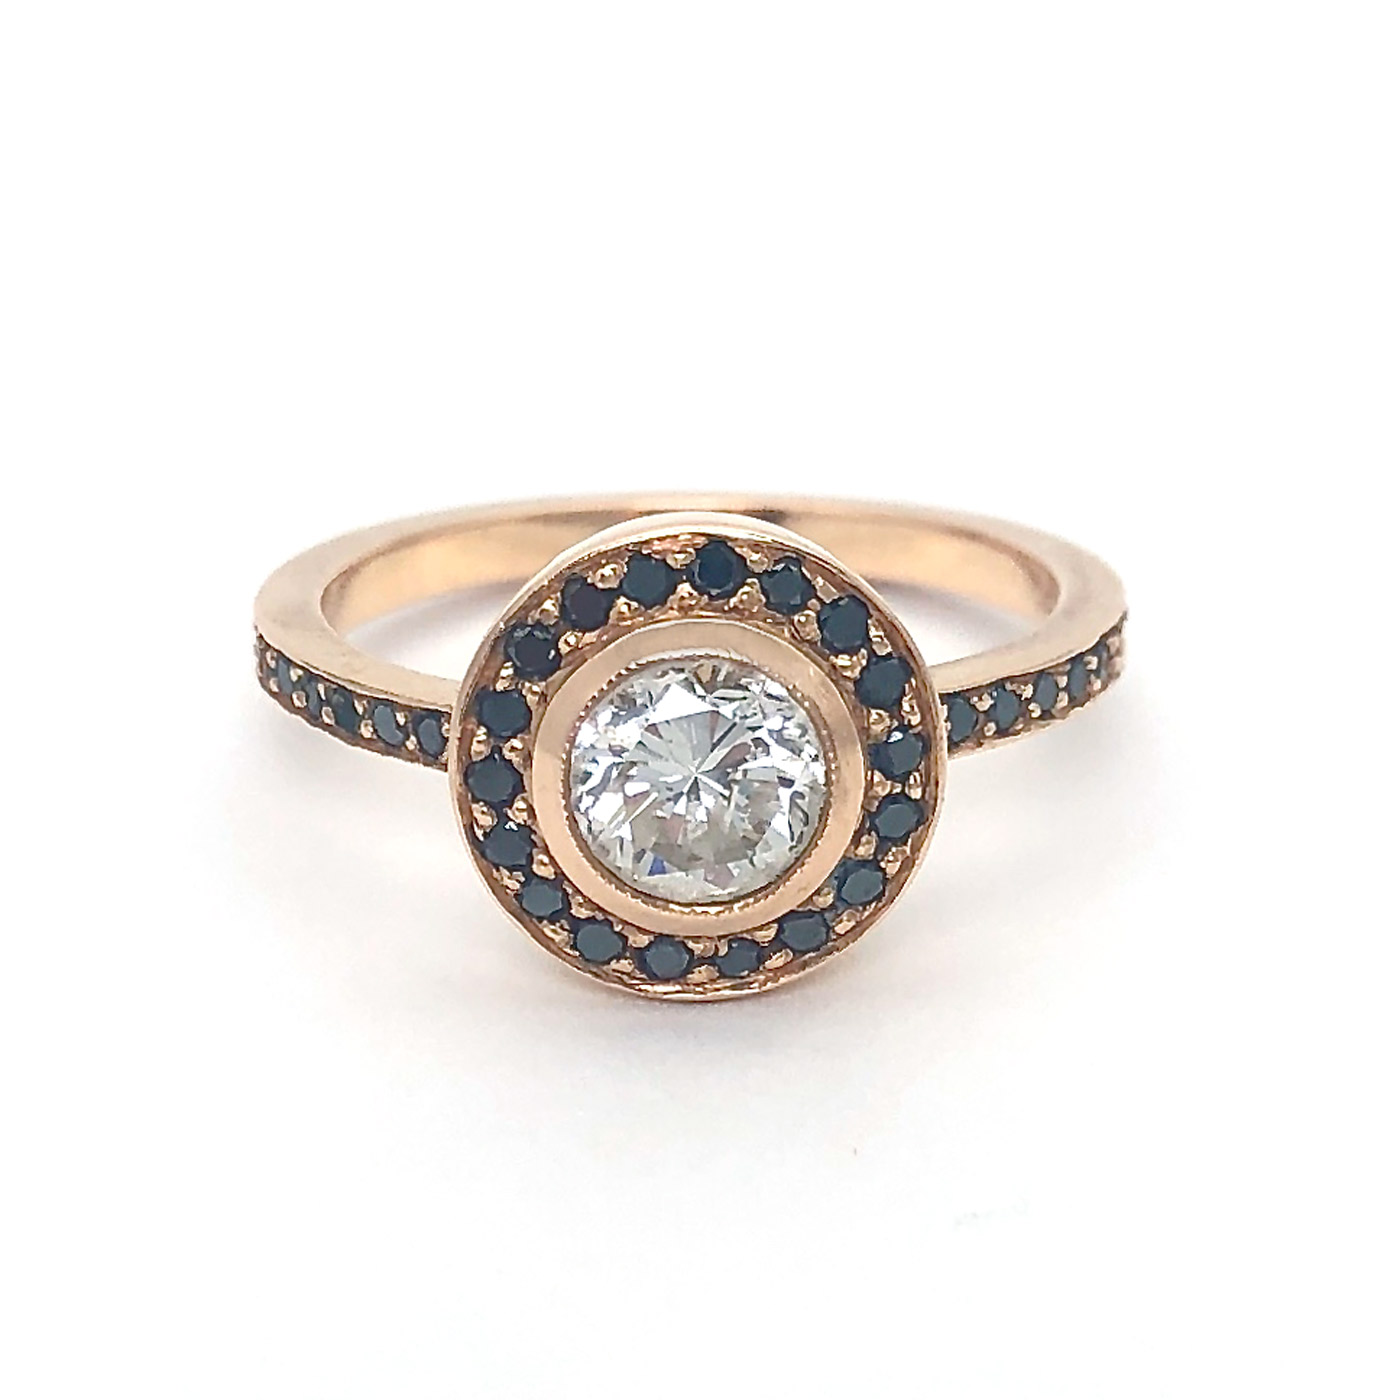 Rachel Beck Diamond Sapph Ring